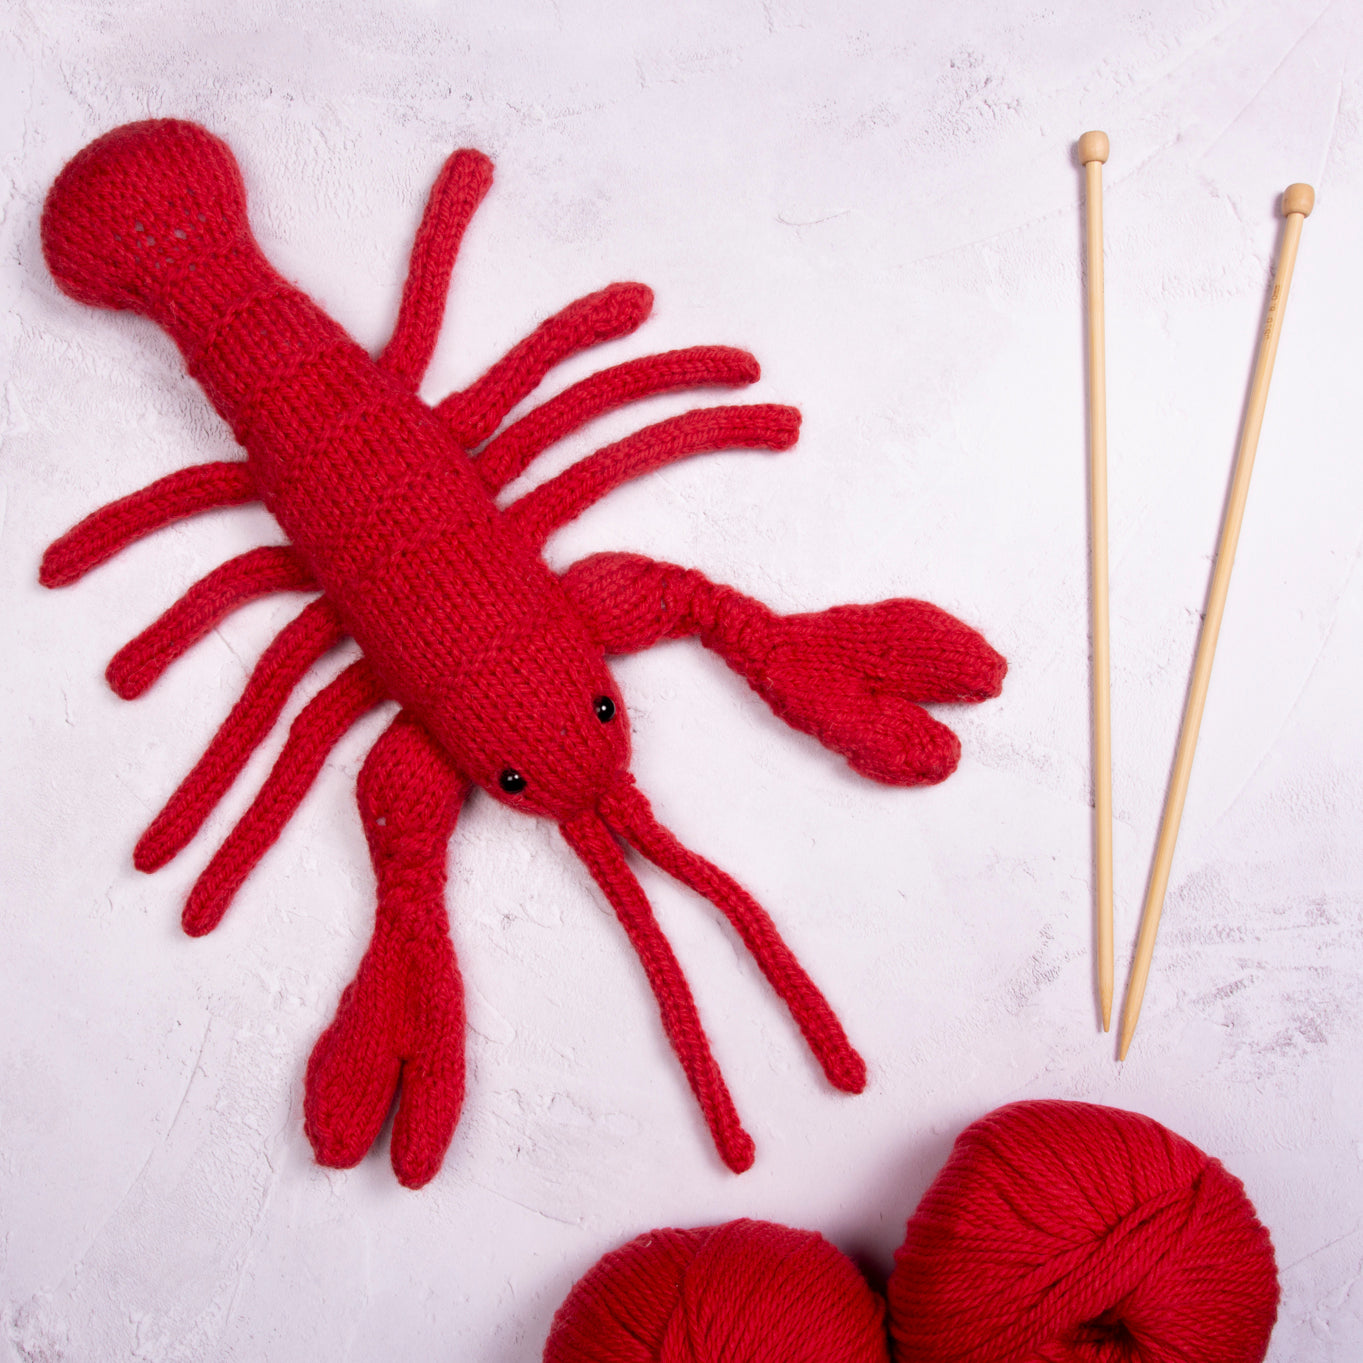 Lobster Knitting Kit - Red or Blue